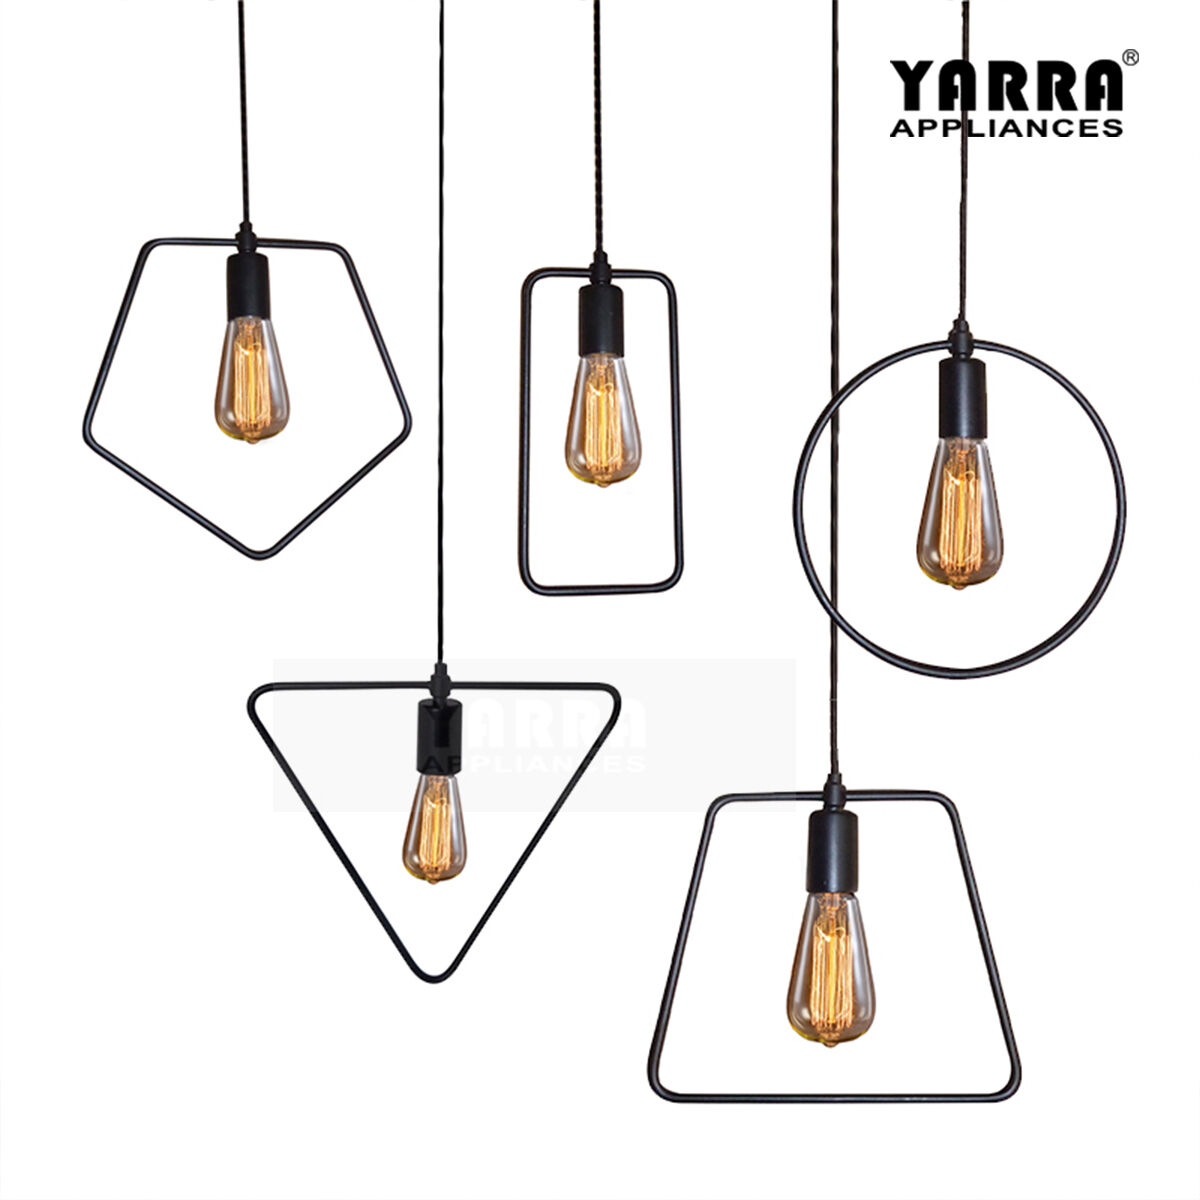 1lt Glass Retro Pendant Light 1 5m Cord Ceiling Lamp